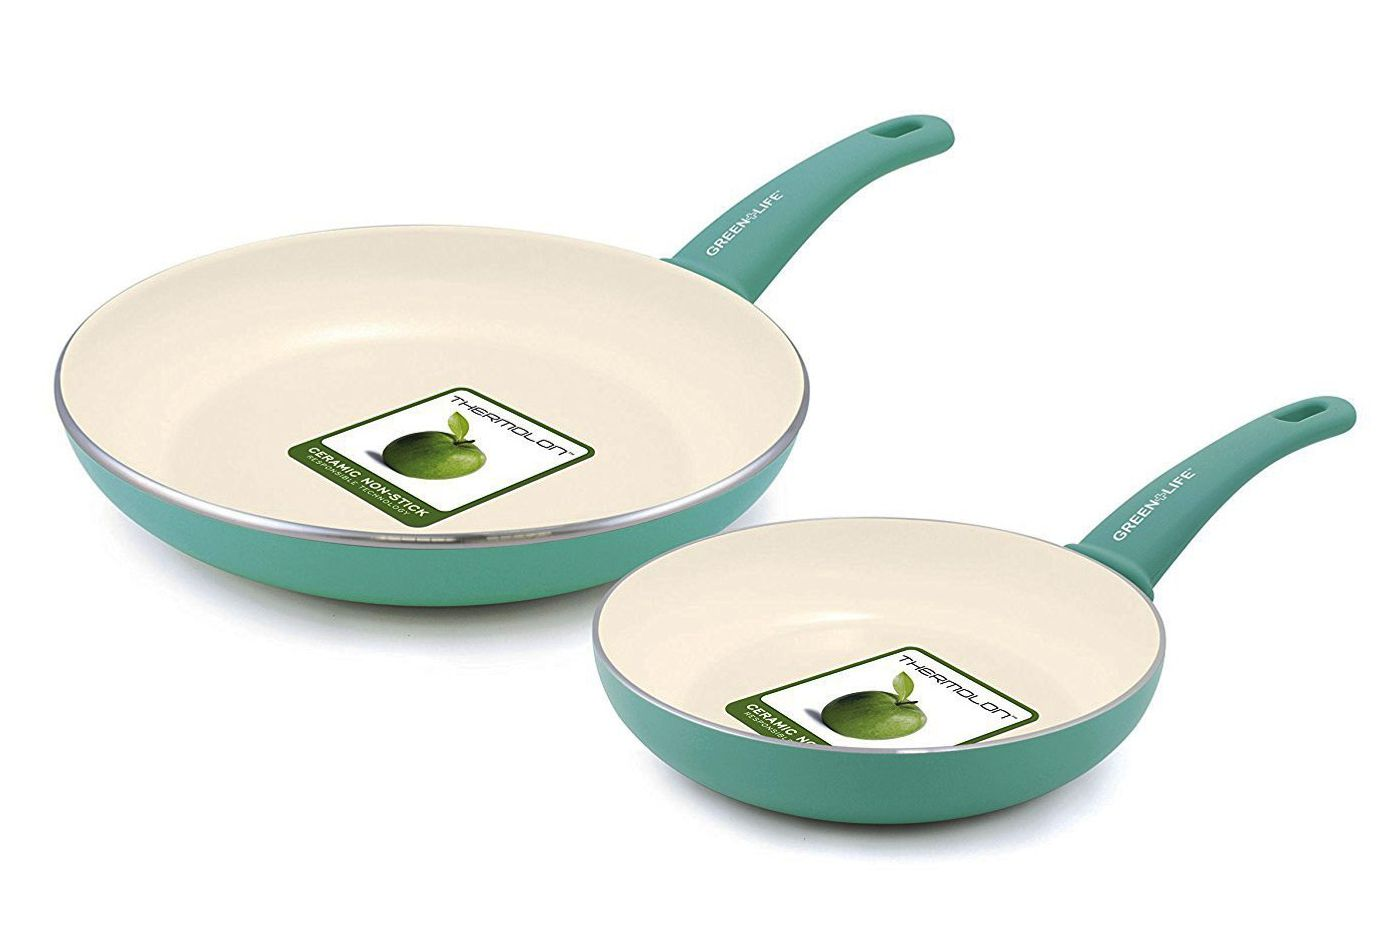 GreenLife Soft Grip Ceramic Non-Stick Frypan Set